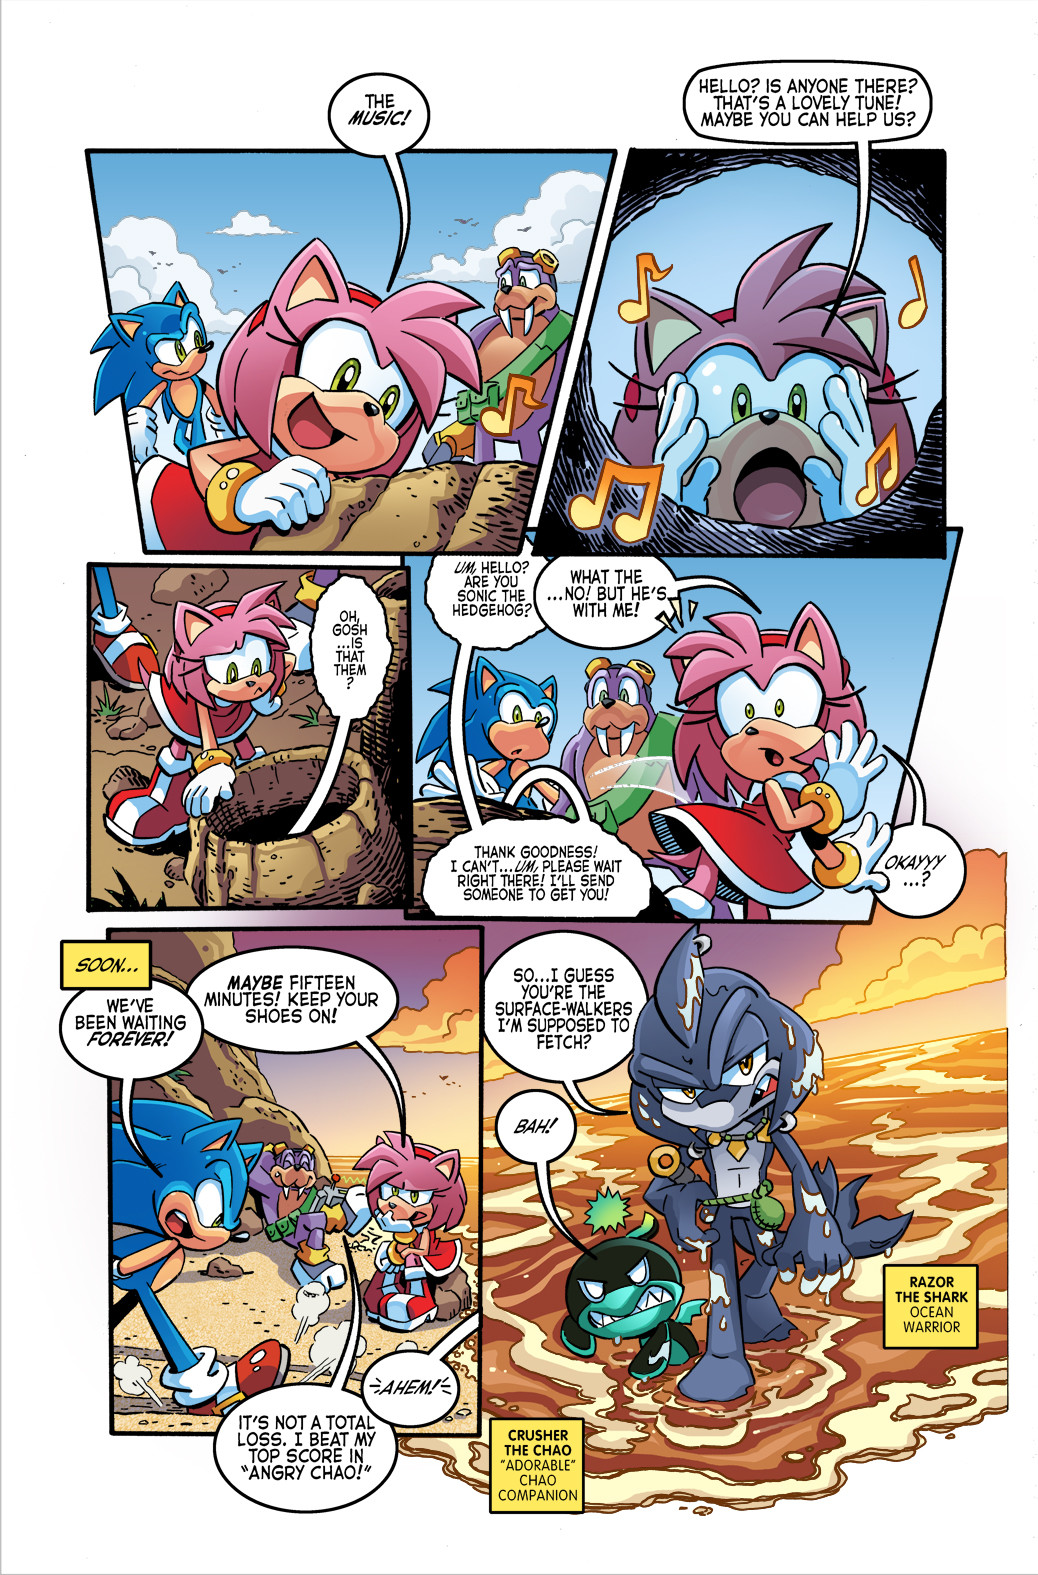 SONIC THE HEDGEHOG - #260, page4